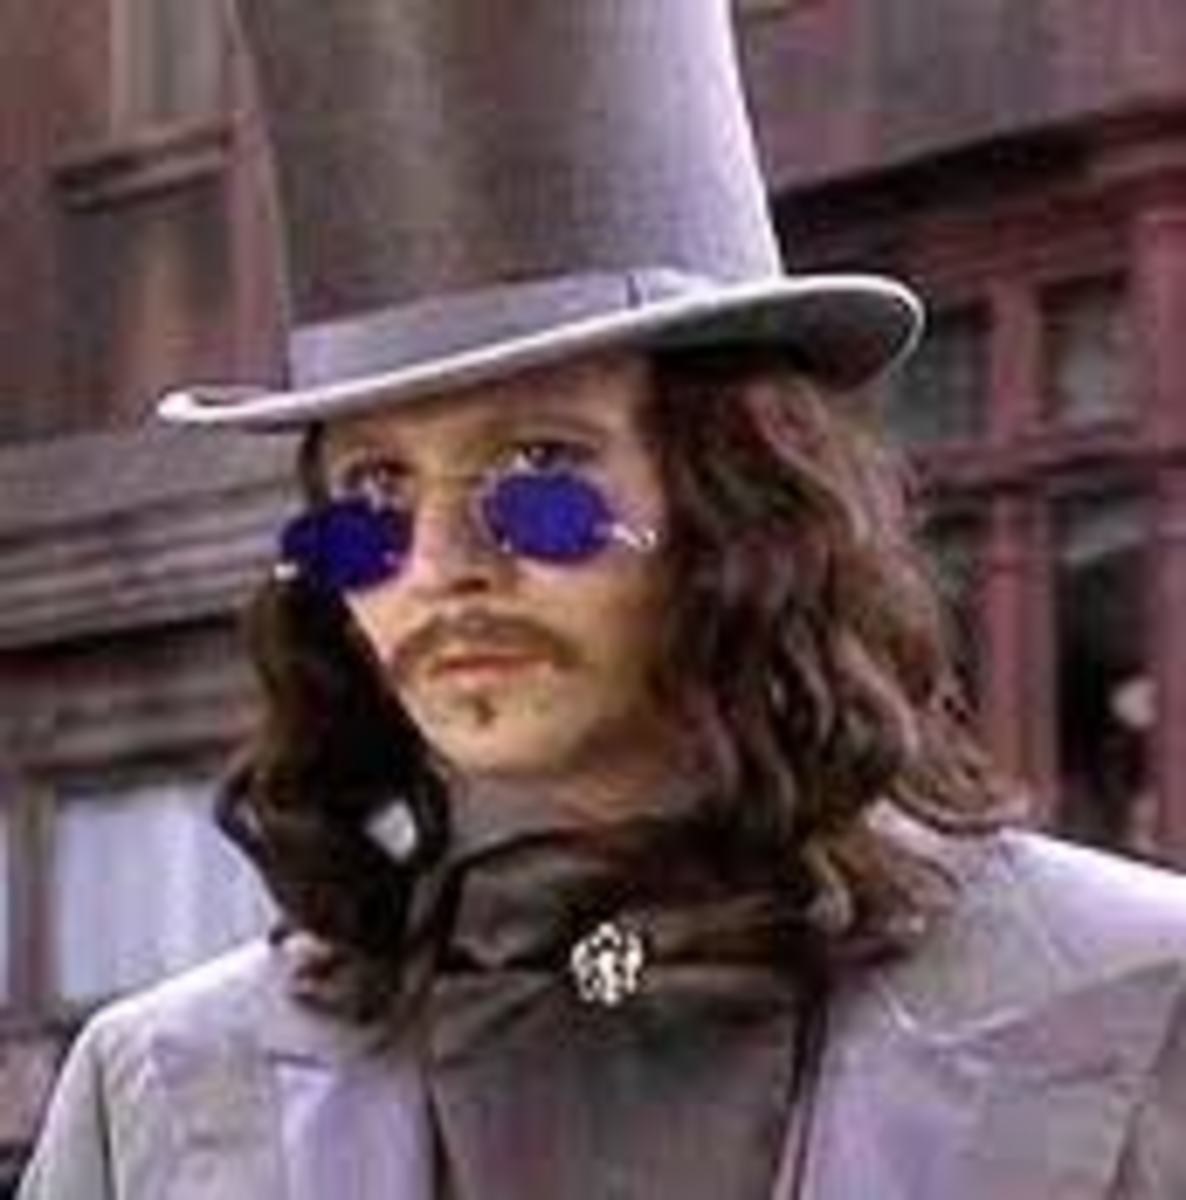 Gary Oldman as Dracula looks just like me in a top hat and suit Gary Oldman Young Dracula